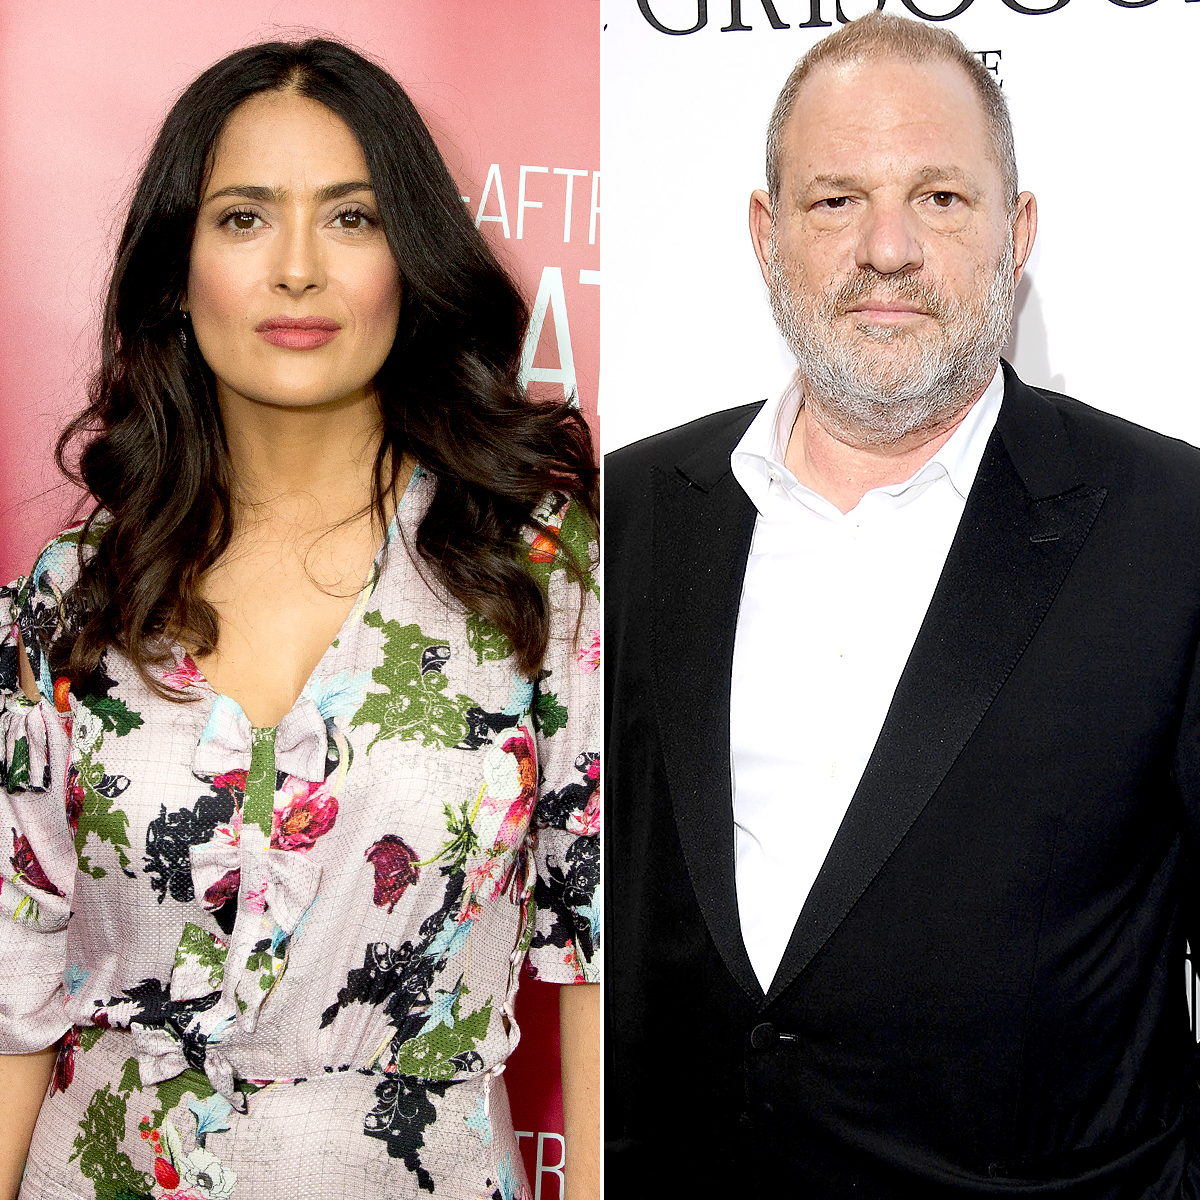 Salma Hayek tells of Harvey Weinstein 'the monster'